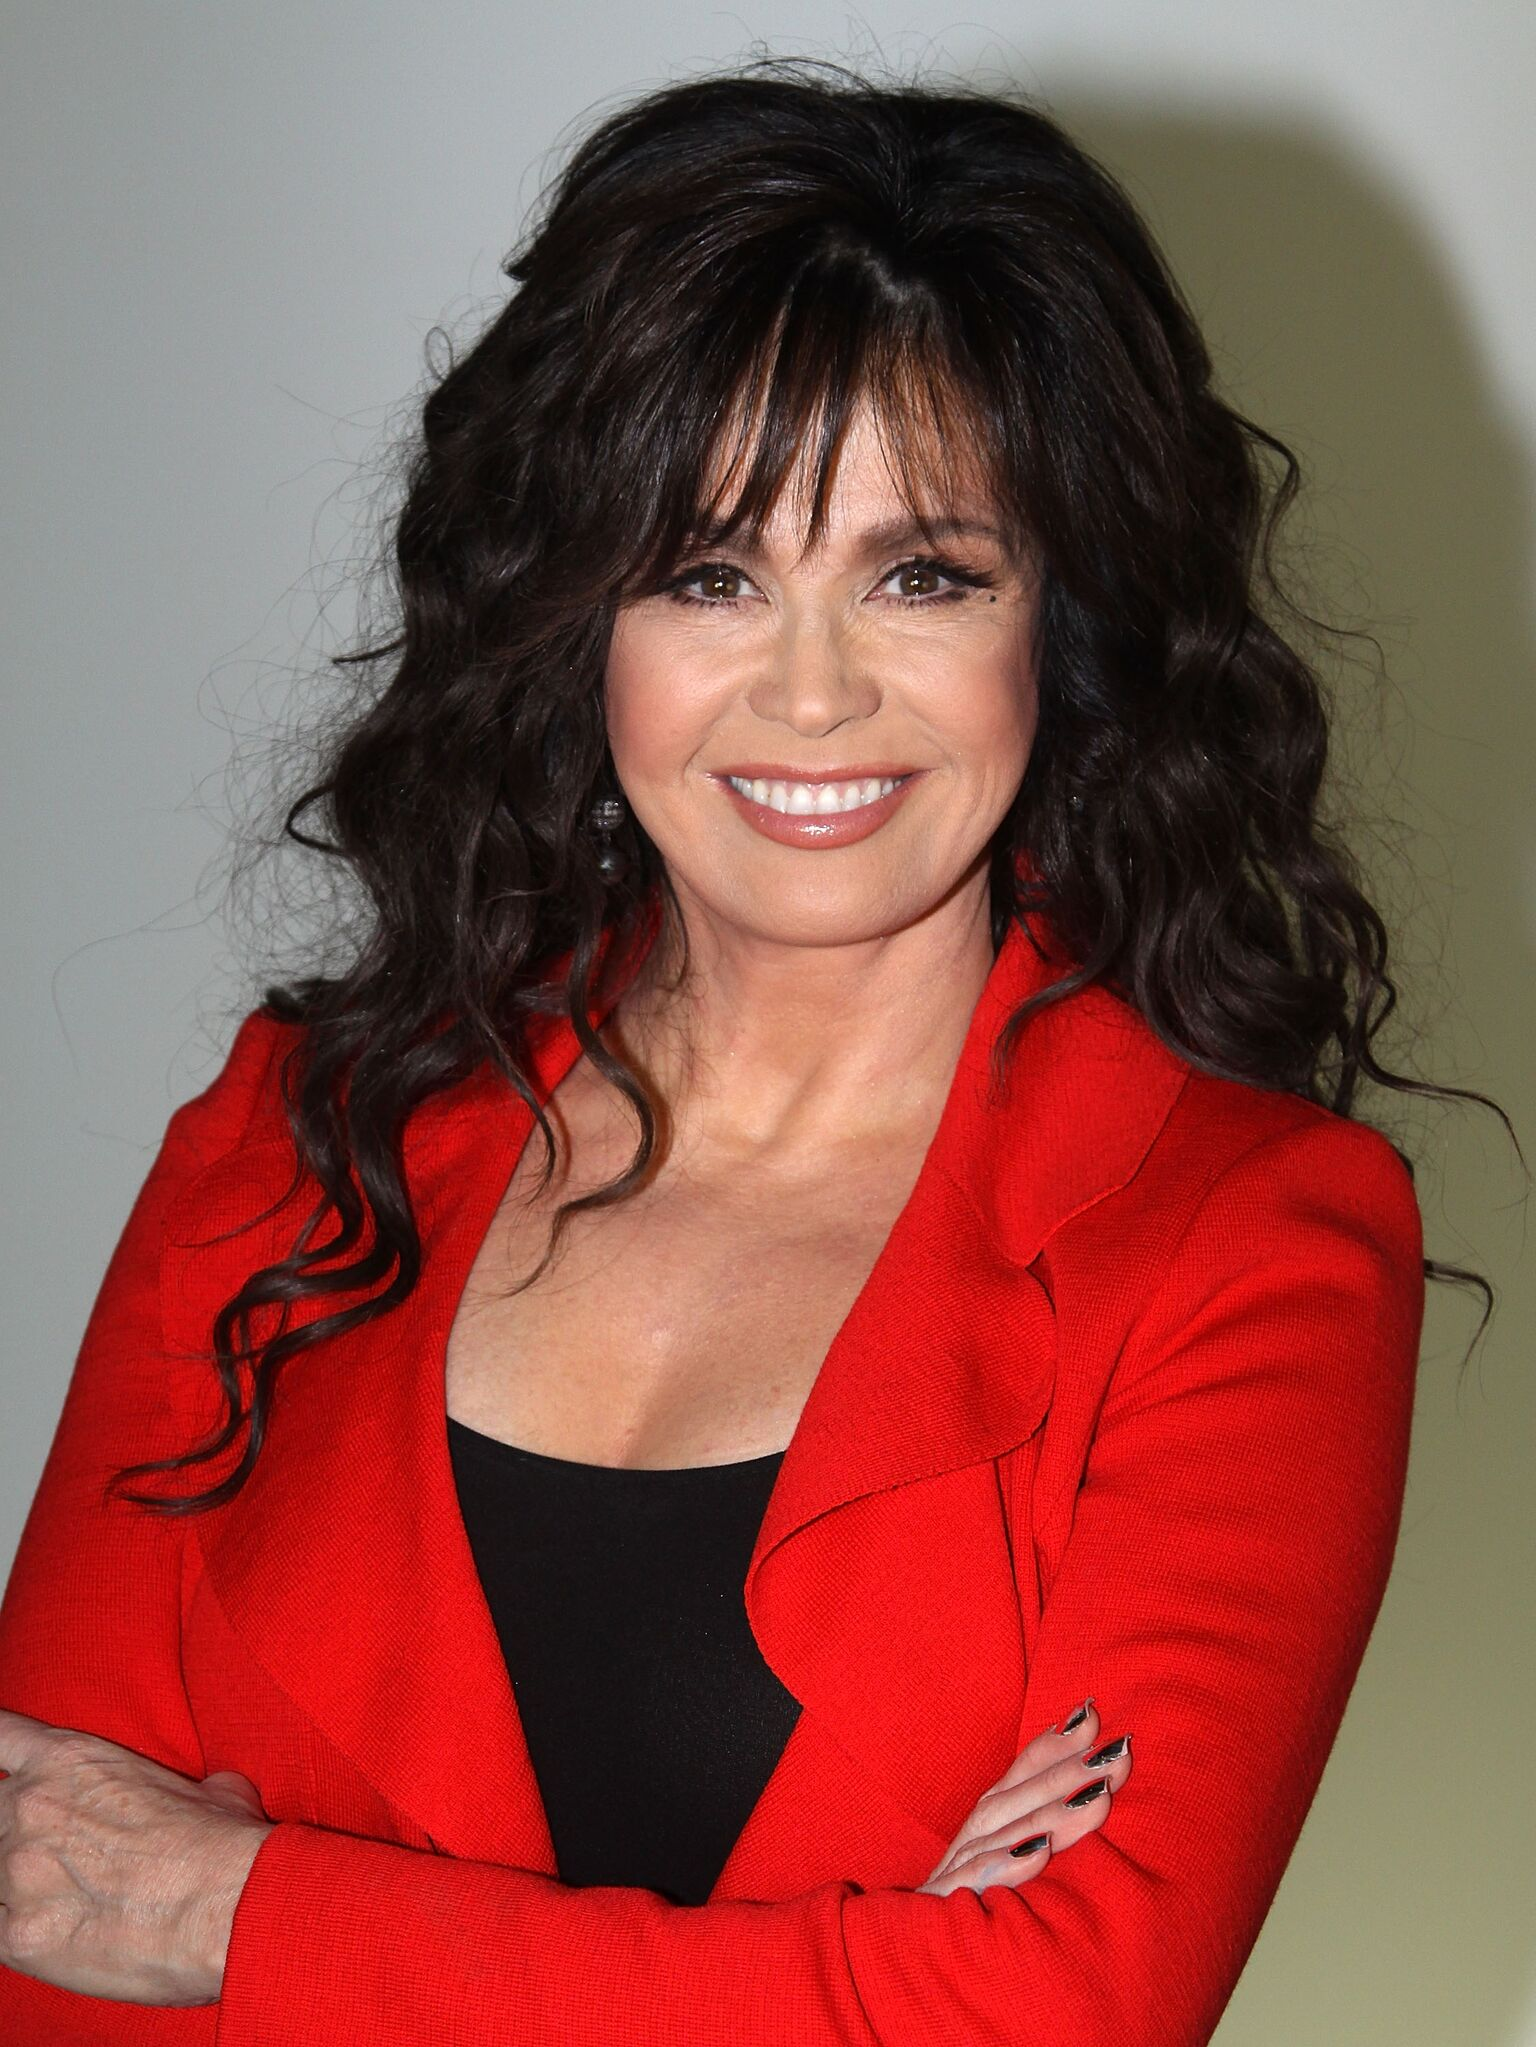 Marie Osmond at The Broadway.com Studios on December 8, 2010 in New York City | Photo: Getty Images